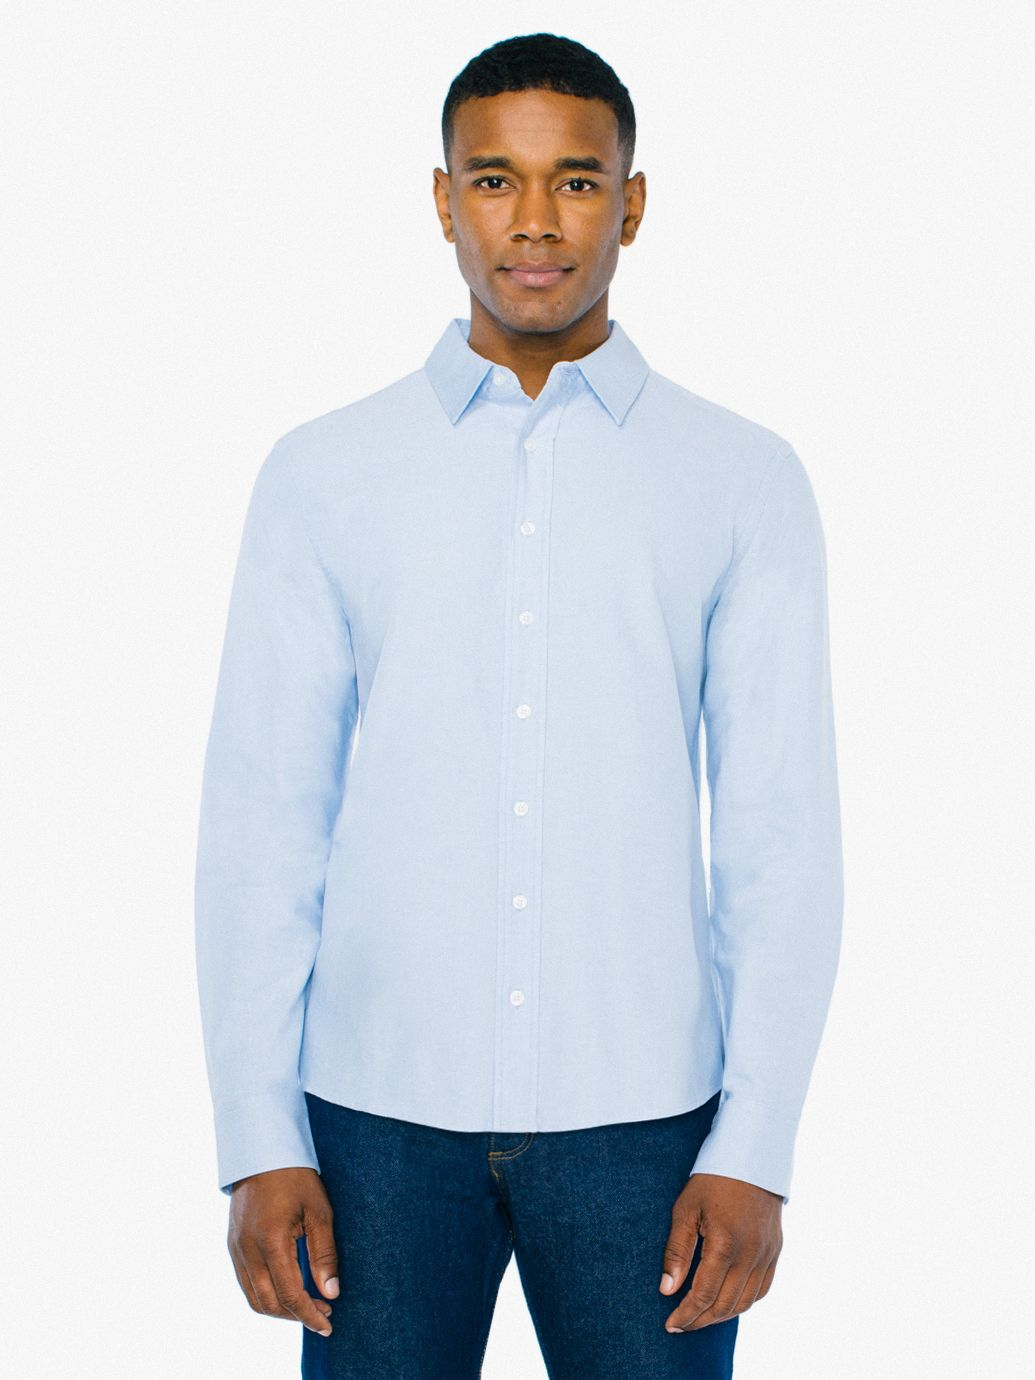 9a9c4ed2faa The Oxford Shirt. rsacp4204w.  58.00. Product Gallery Element